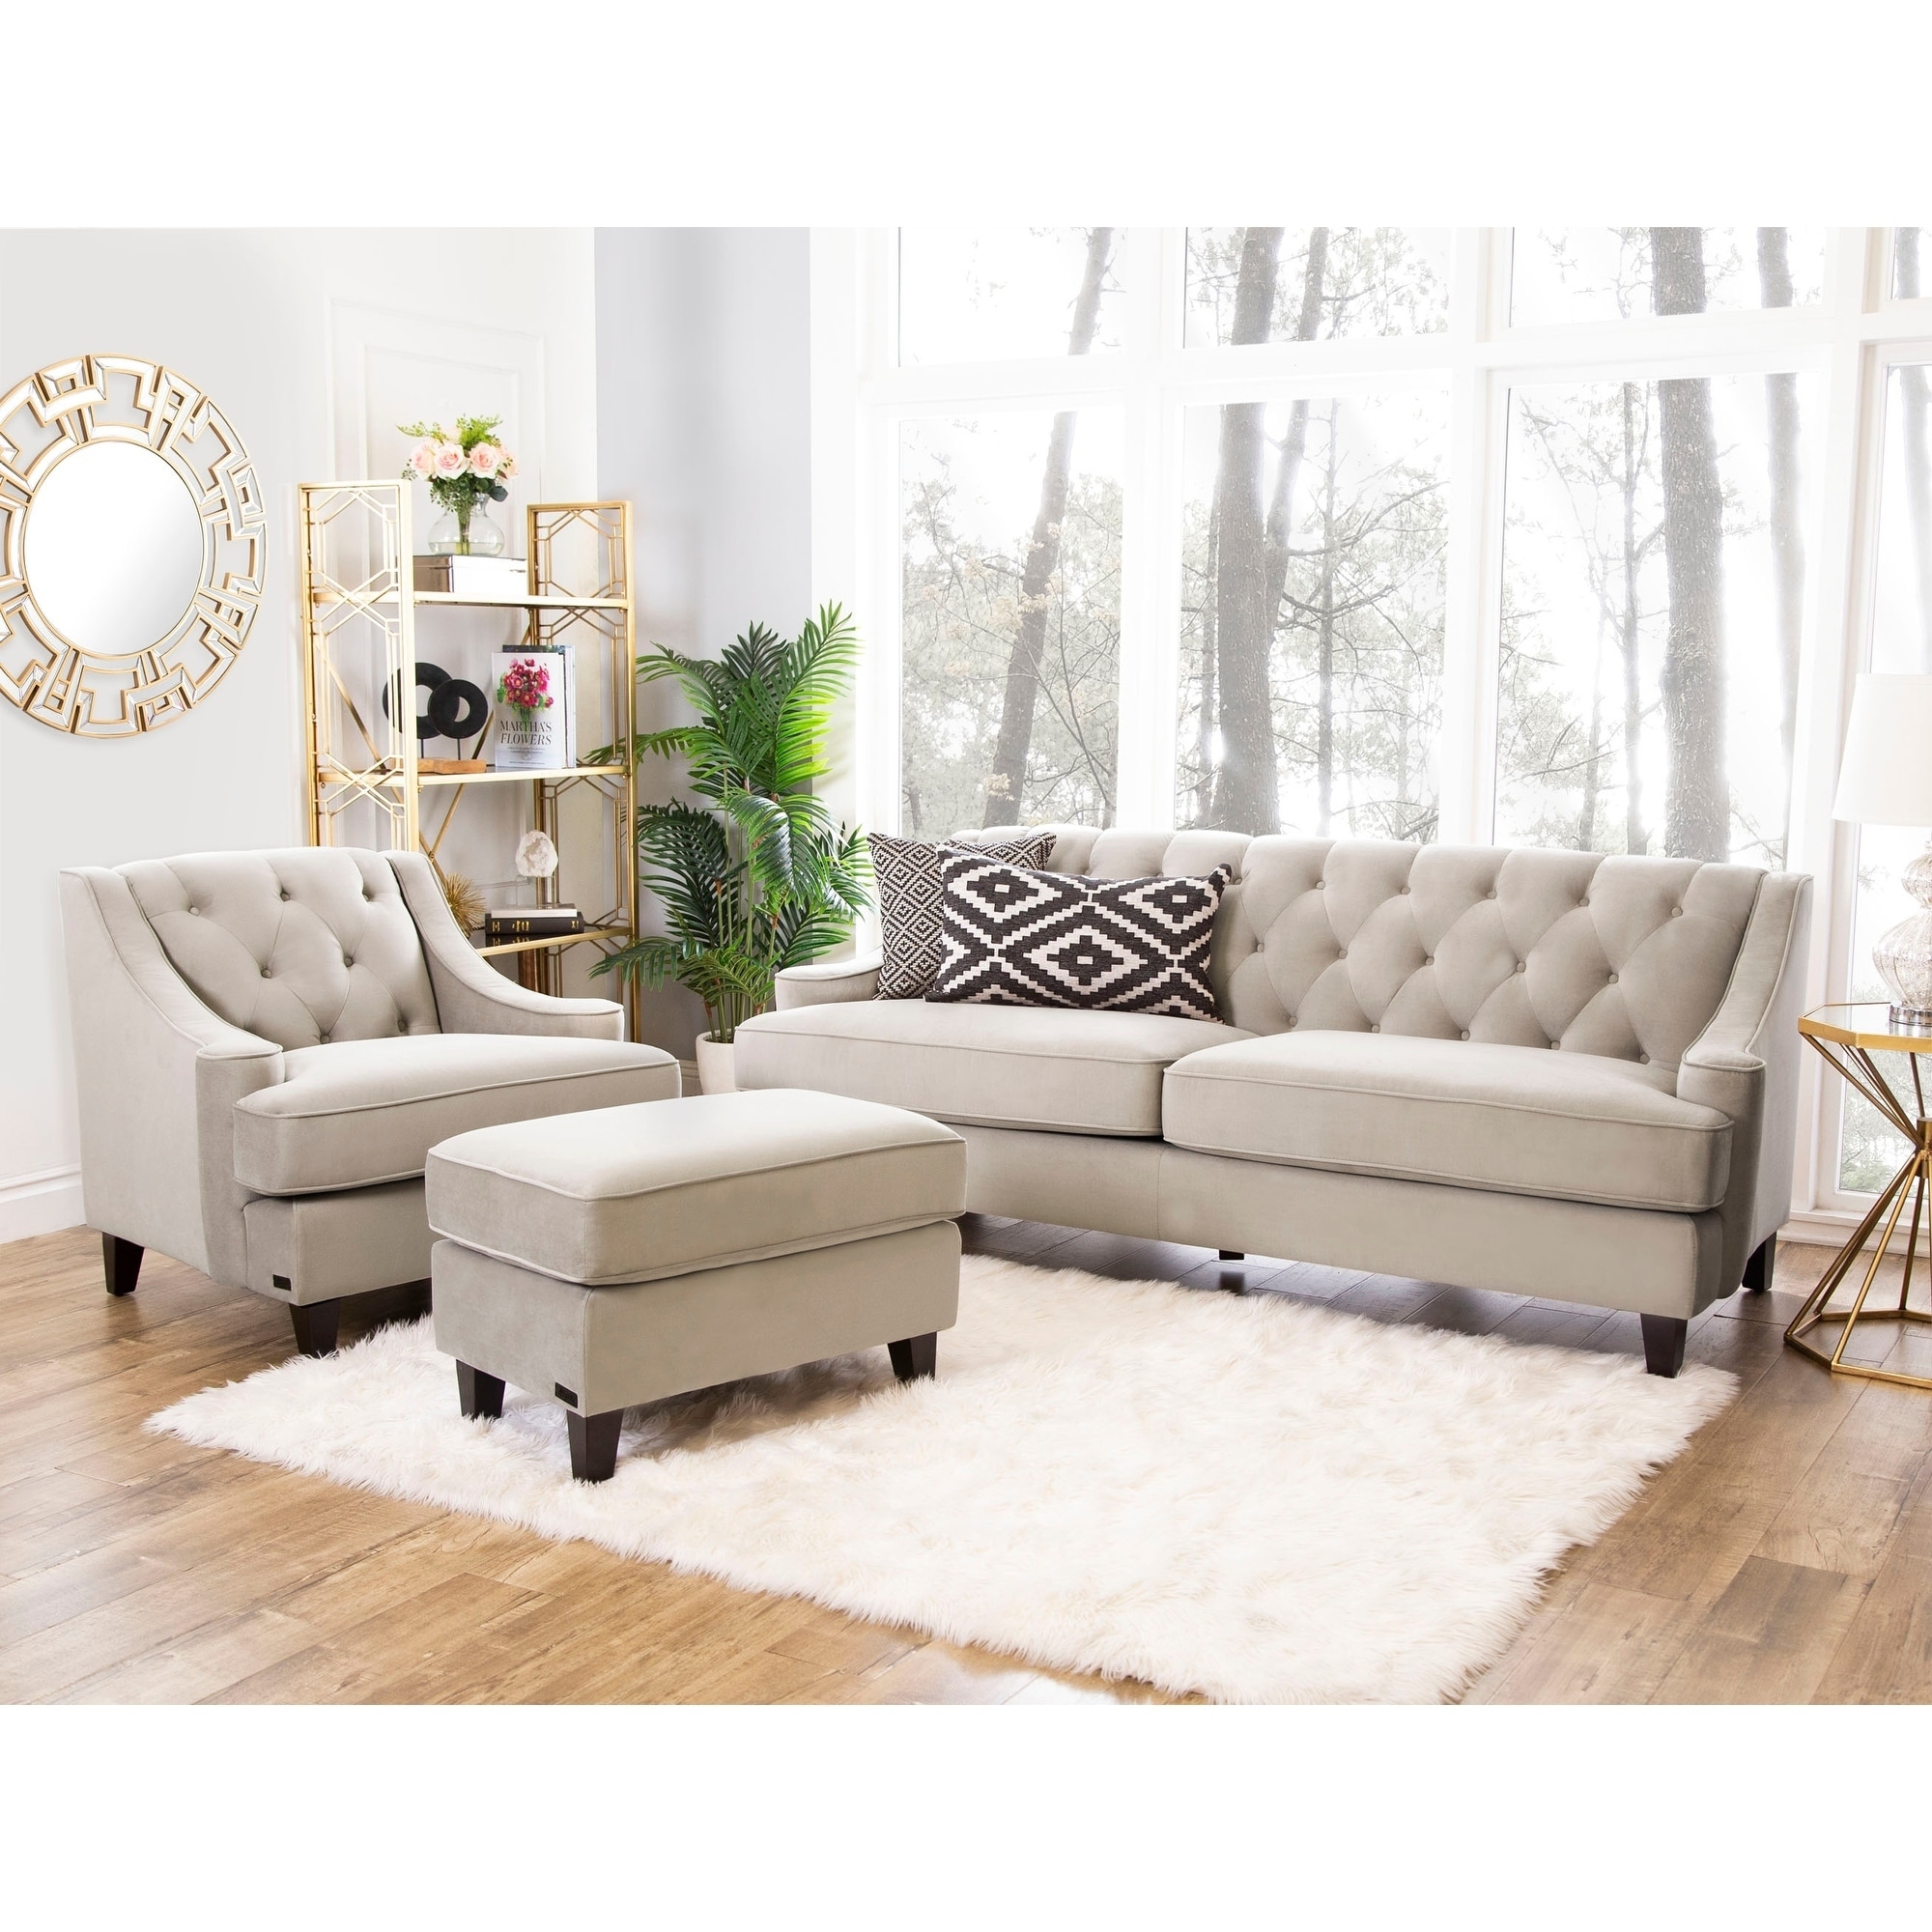 Abbyson claridge taupe velvet 3 piece living room set